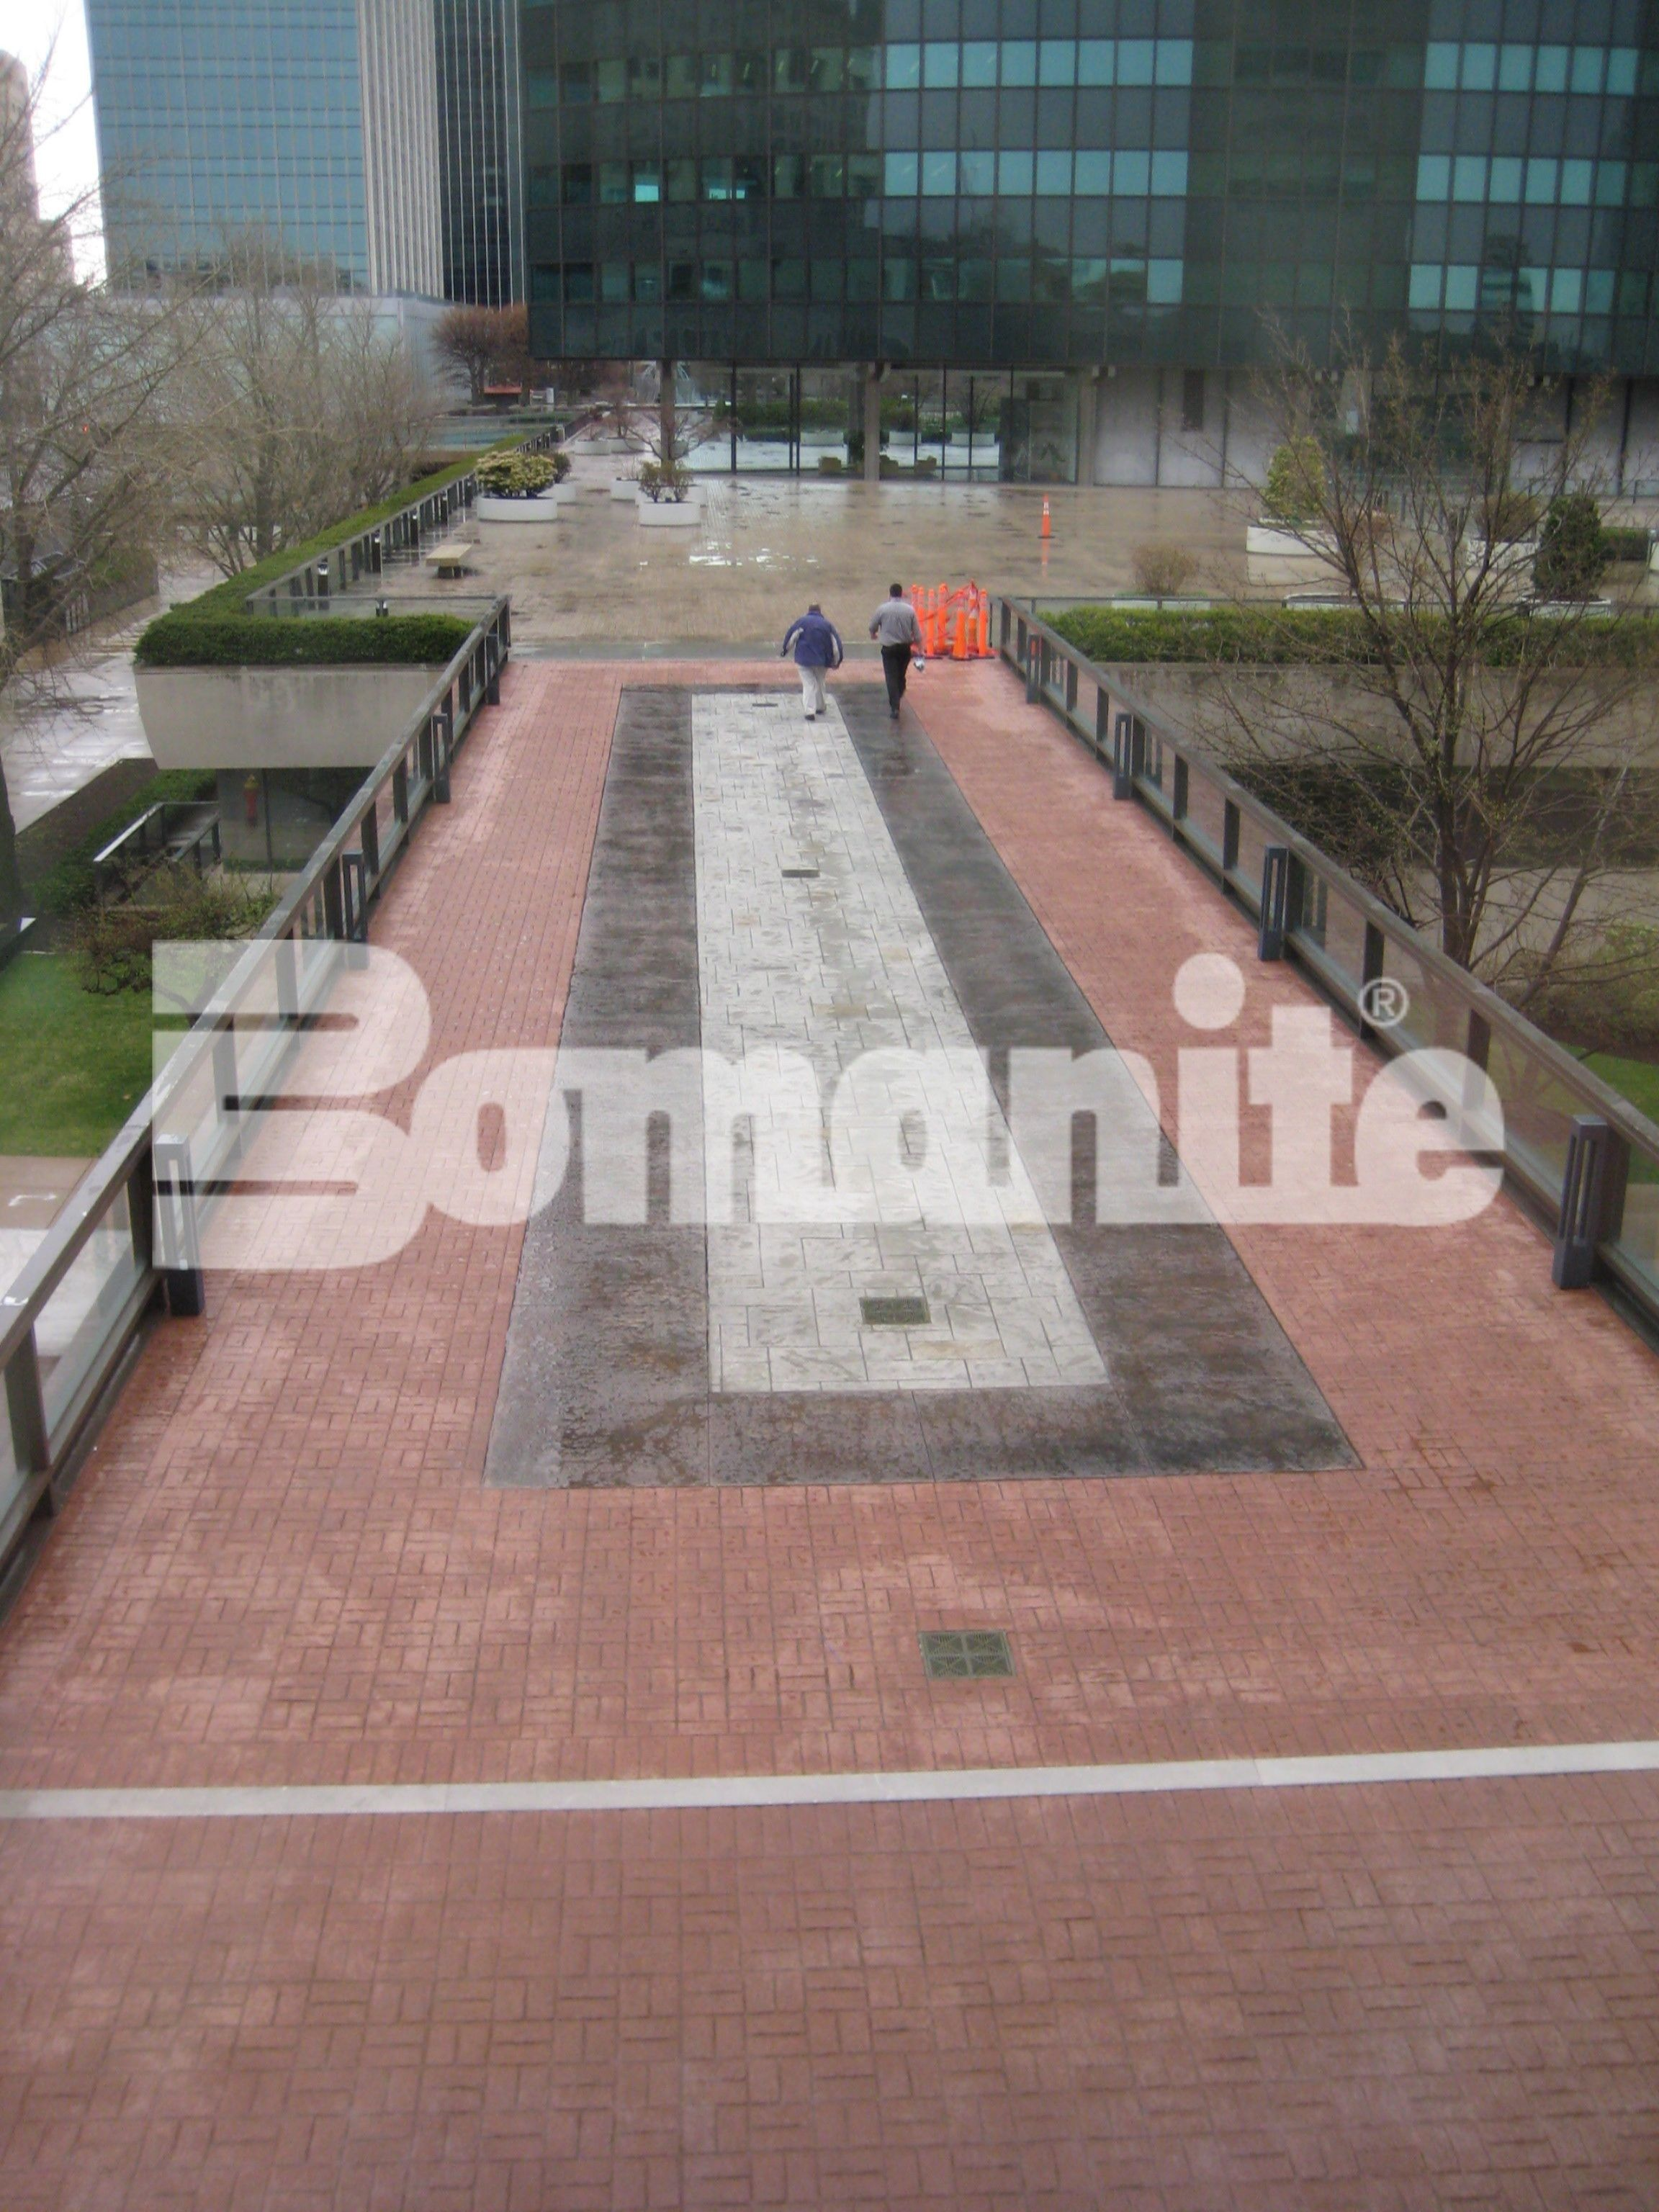 This Award winning Bomanite Imprint project using Bomanite Basketweave Brick pattern and Bomacron Medium Ashlar Slate pattern completely rehabilitated this commercial building plaza in Hartford, CT, installed by Connecticut Bomanite Systems.